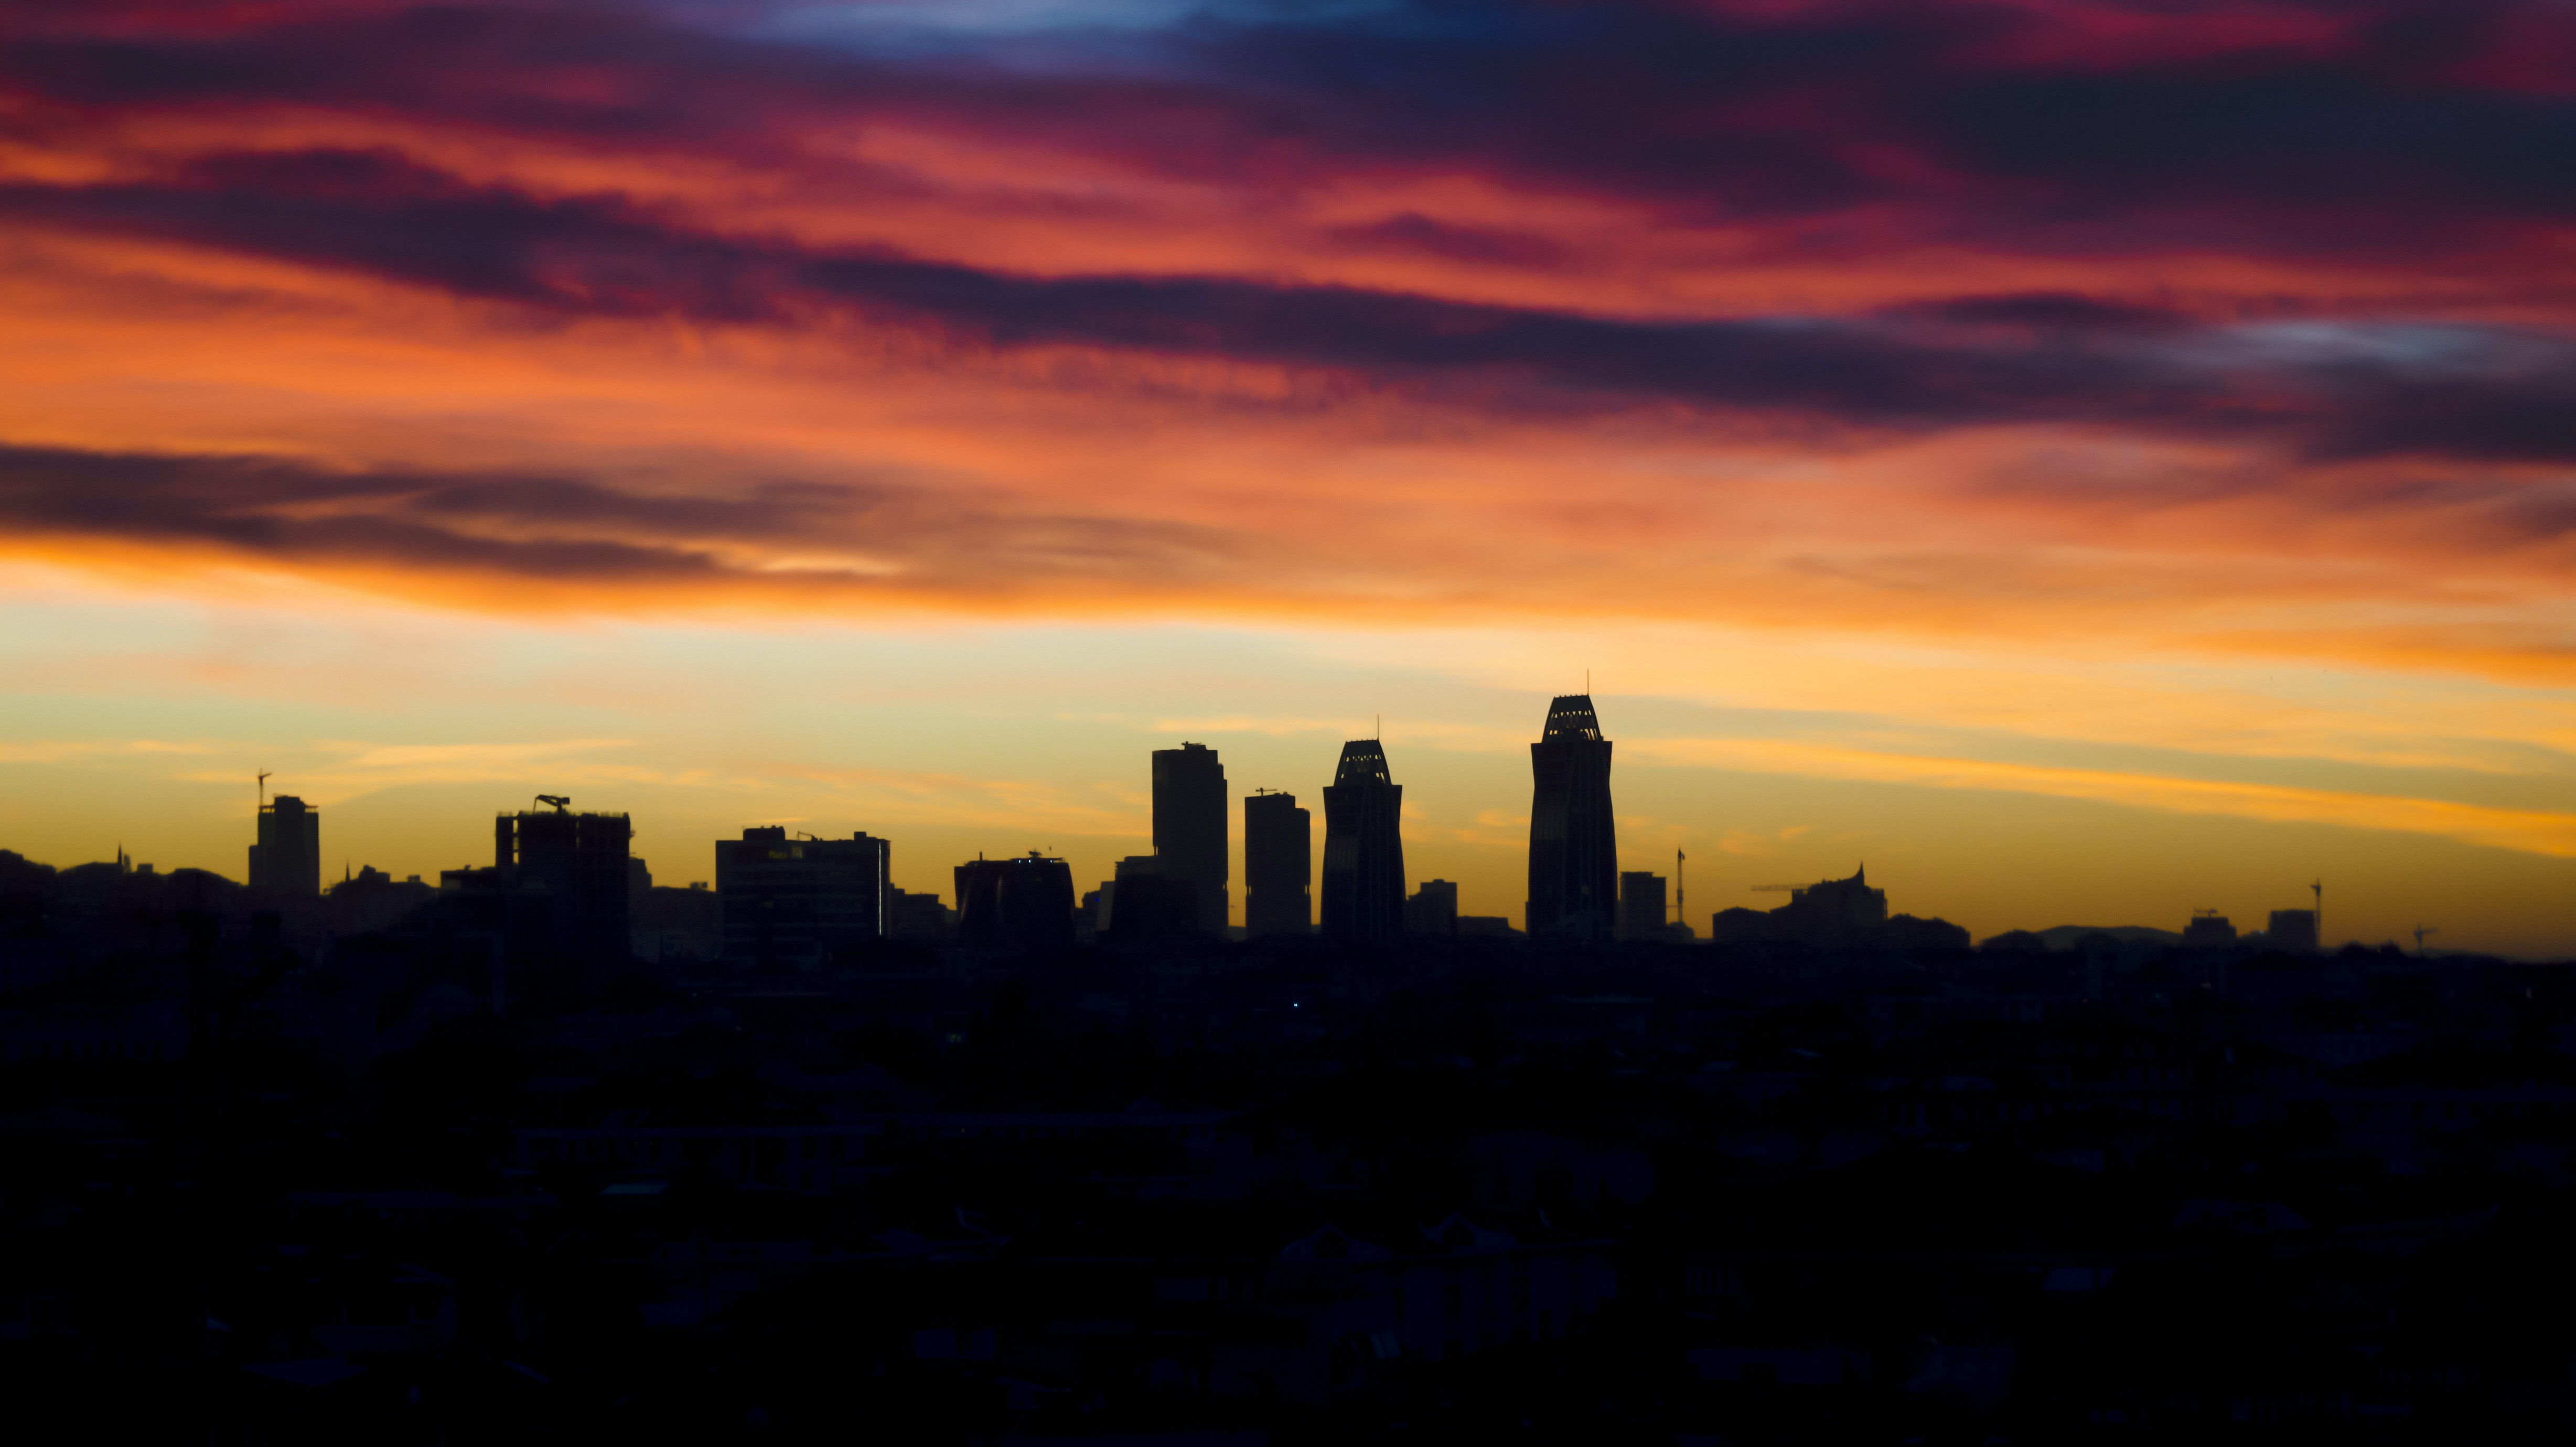 silhouette of buildings during orange sunset